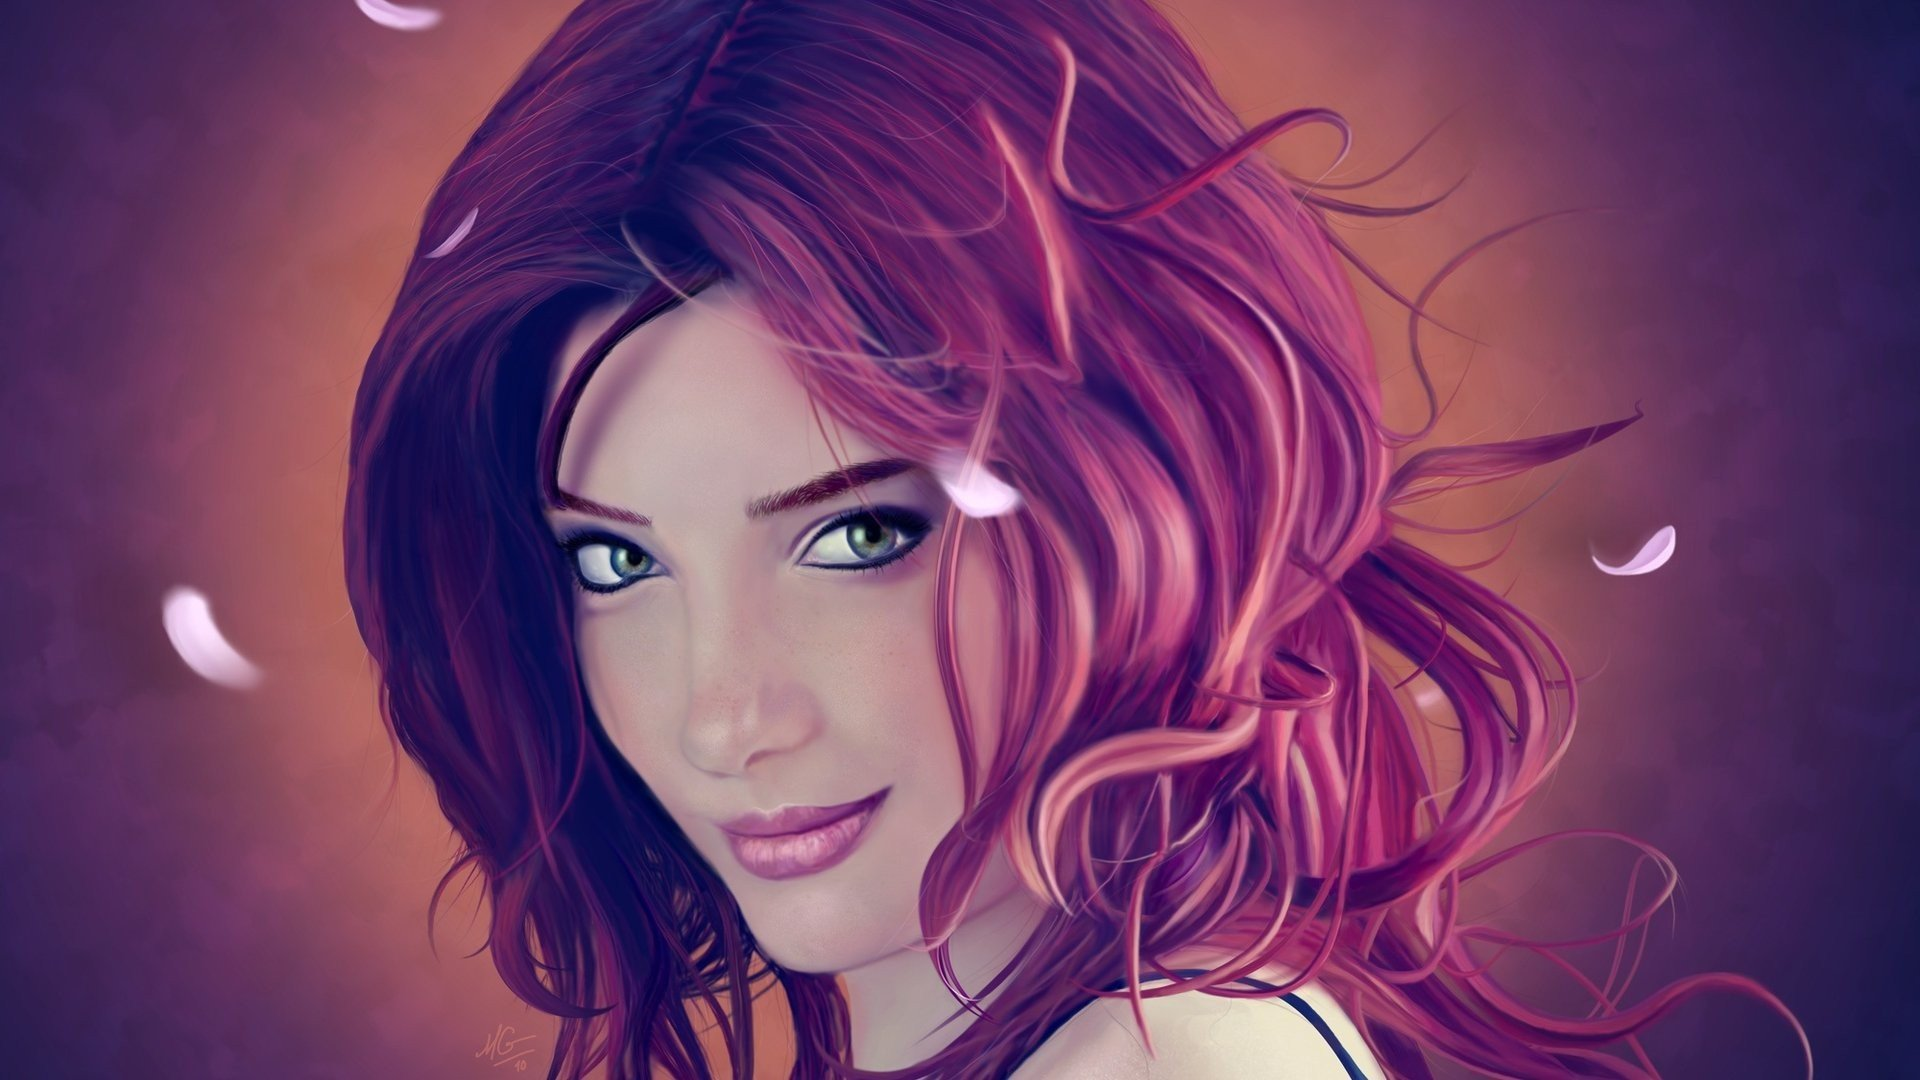 Download full hd 1080p Susan Coffey desktop background ID:185288 for free